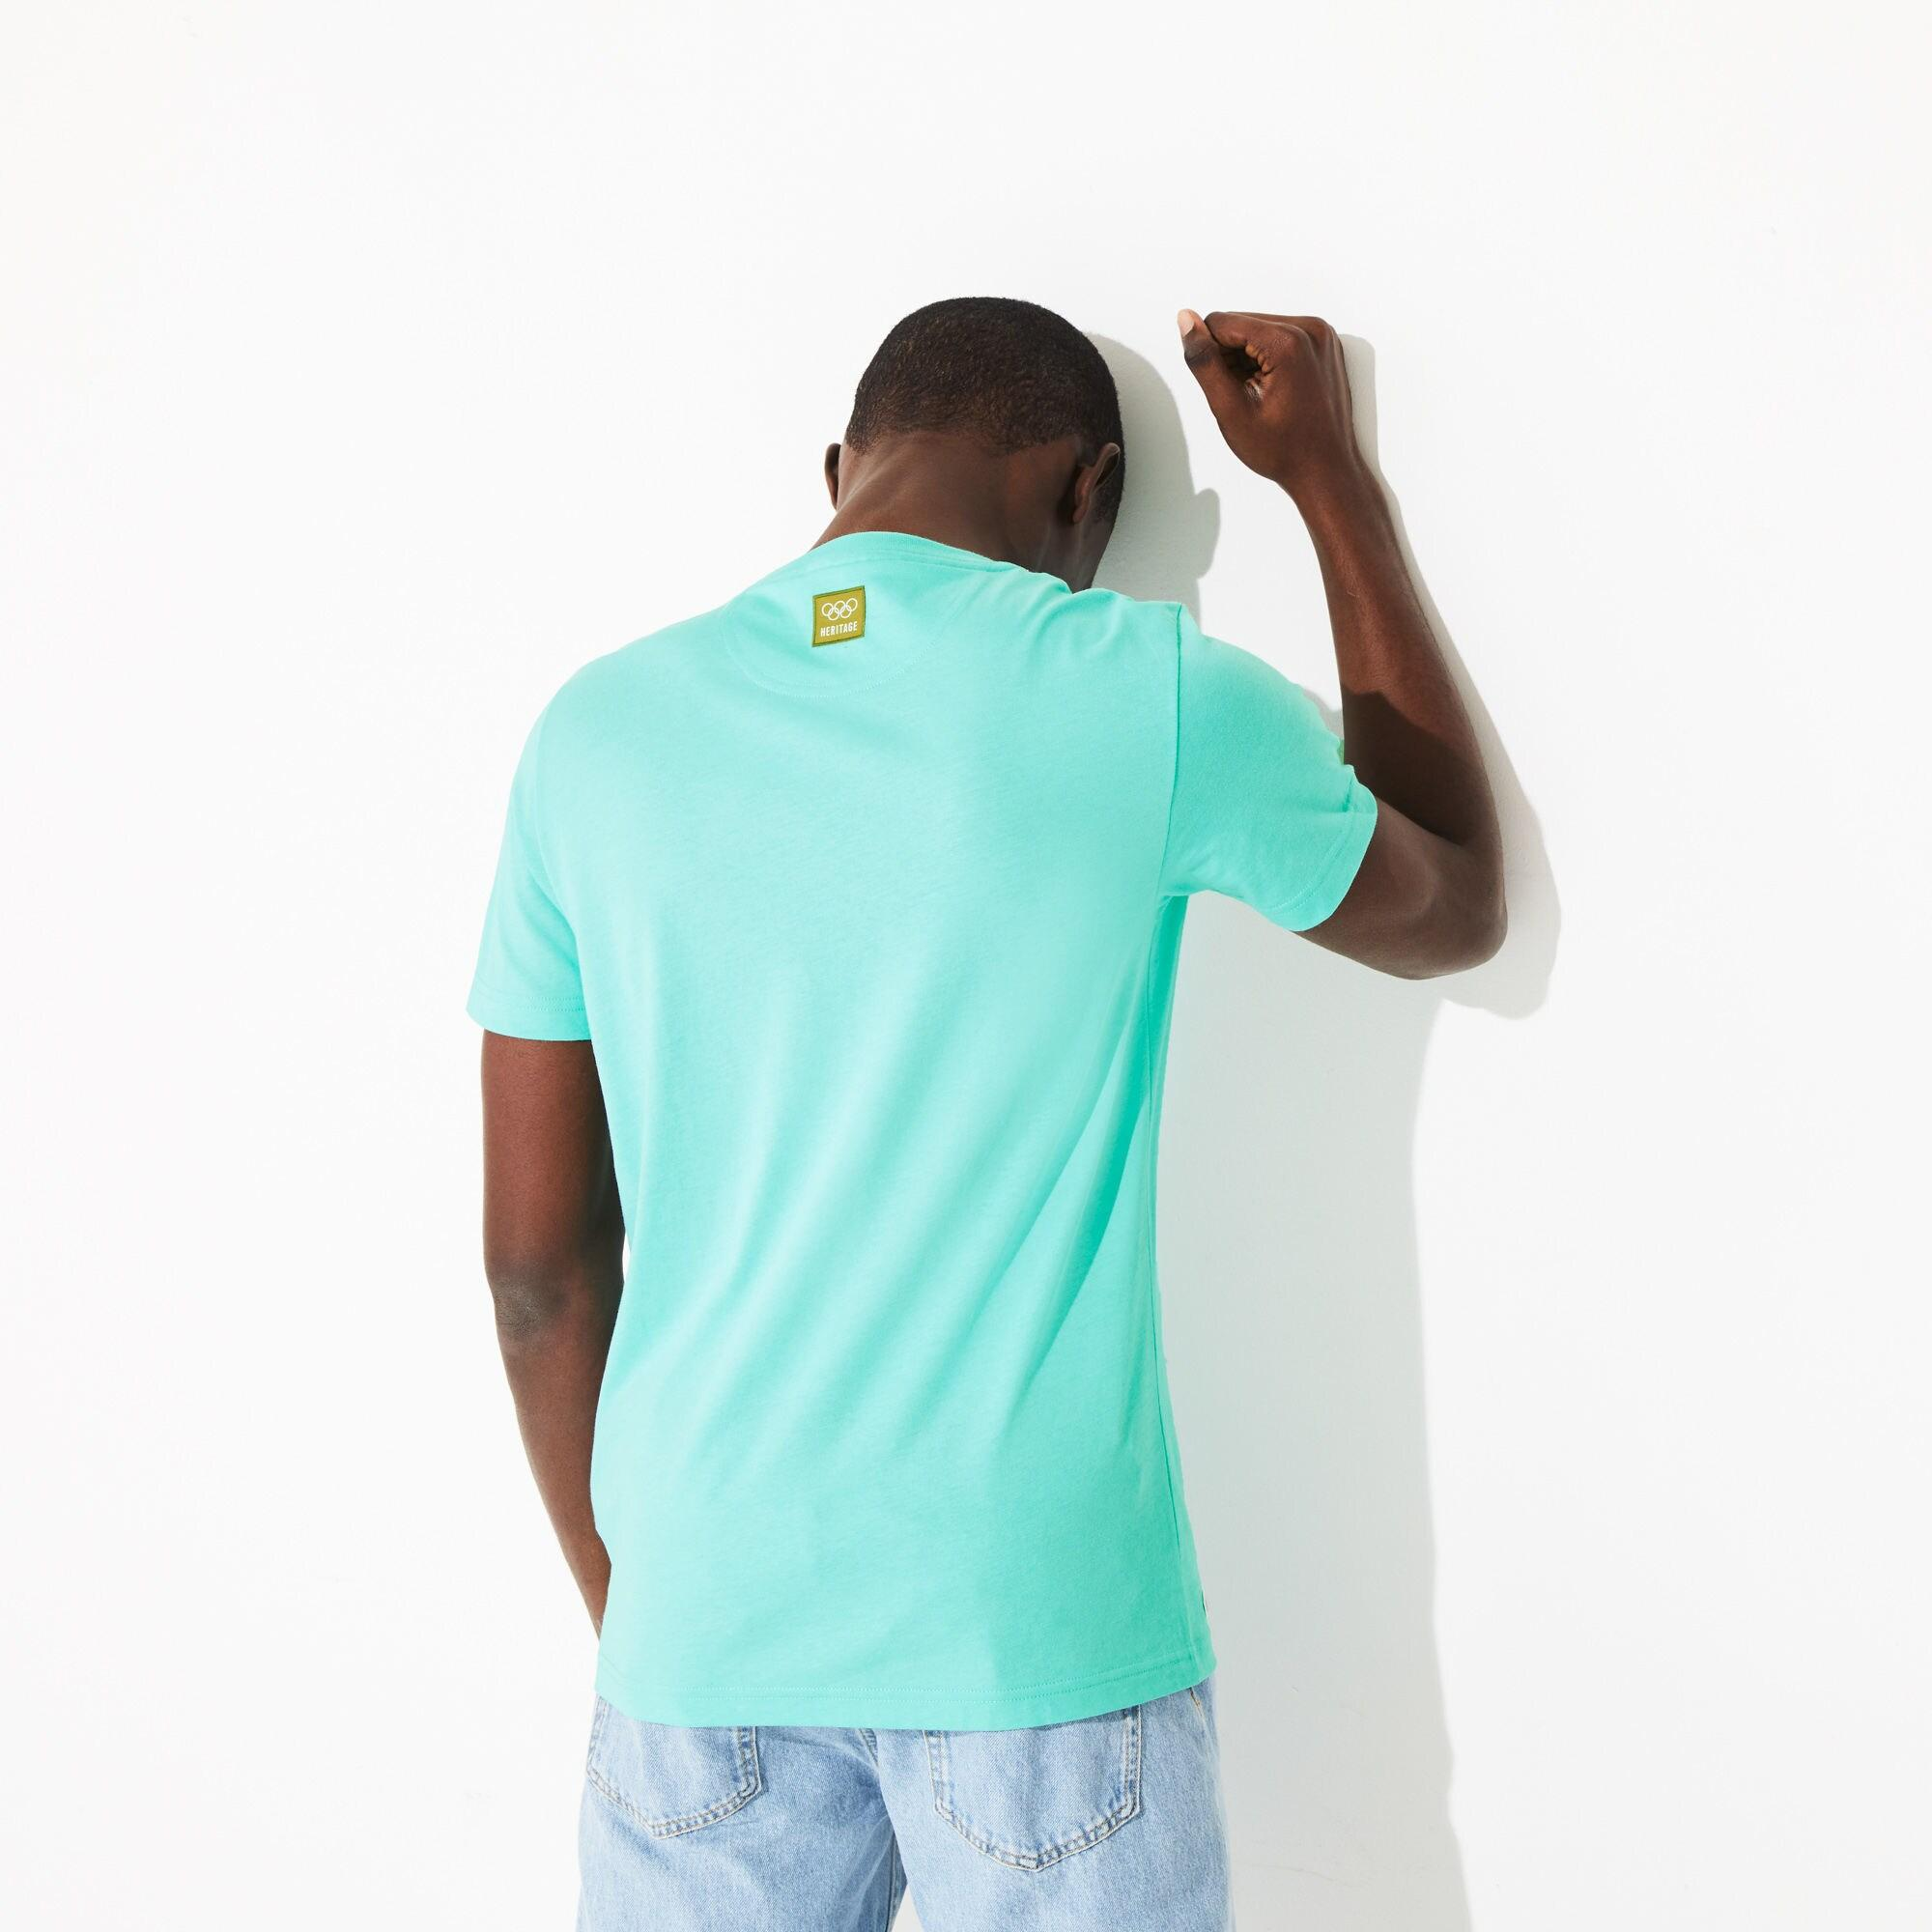 c5e73ff80a Lacoste - Blue Olympic Heritage Collection T-shirt for Men - Lyst. View  fullscreen